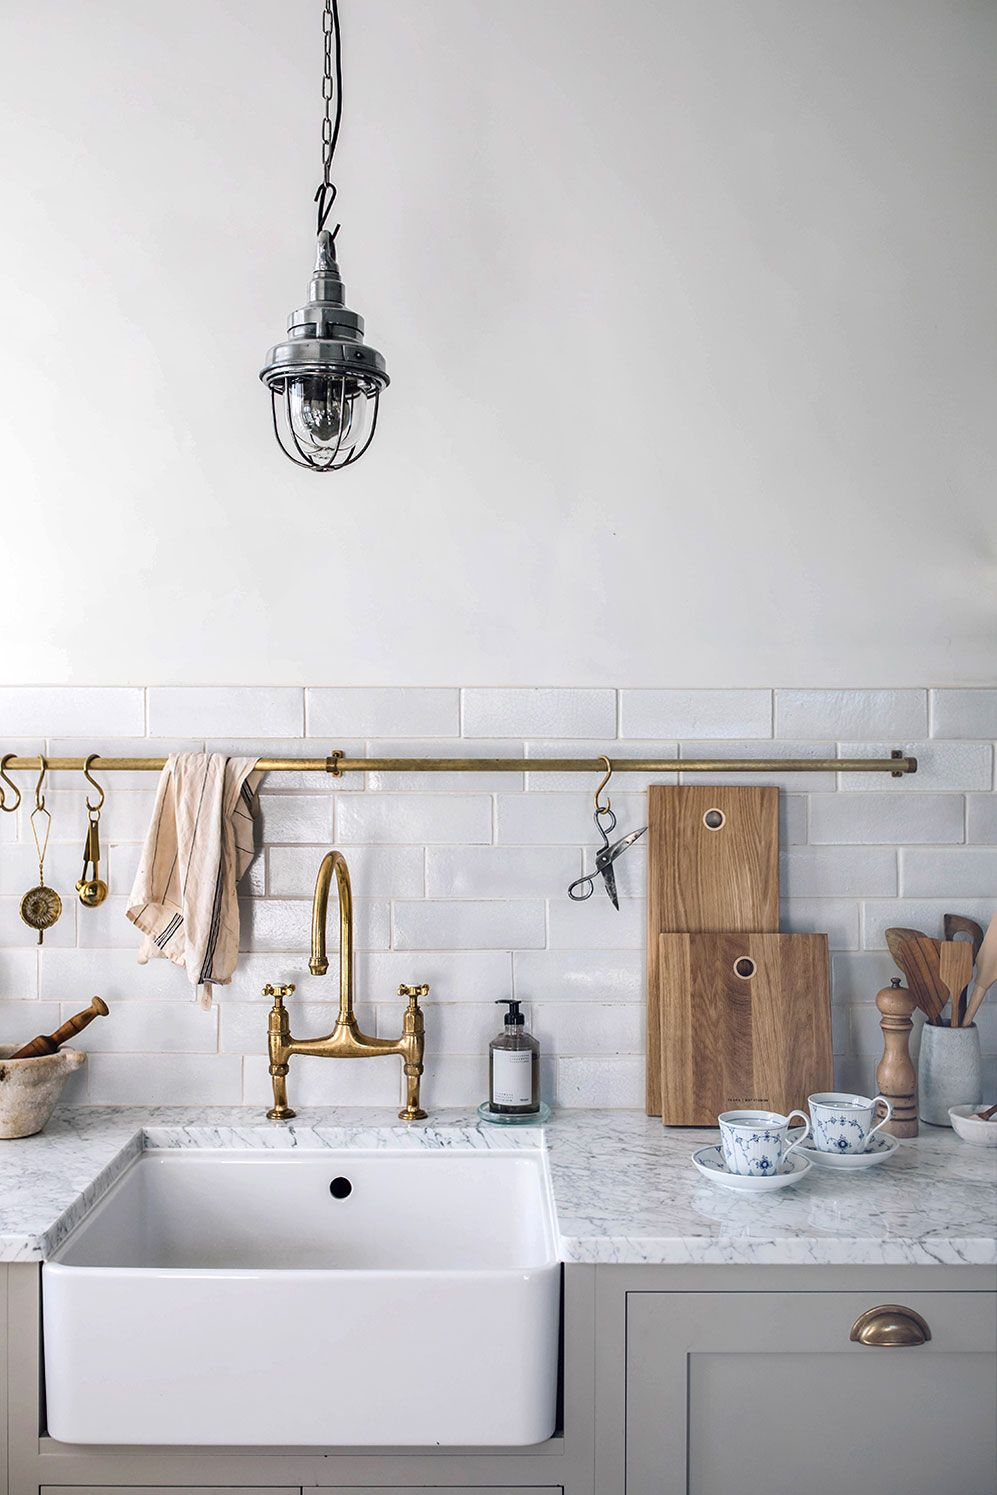 Our Food Stories Sublime Kitchen Sfgirlbybay Ikea Makeover Countryside Kitchen Kitchen Marble